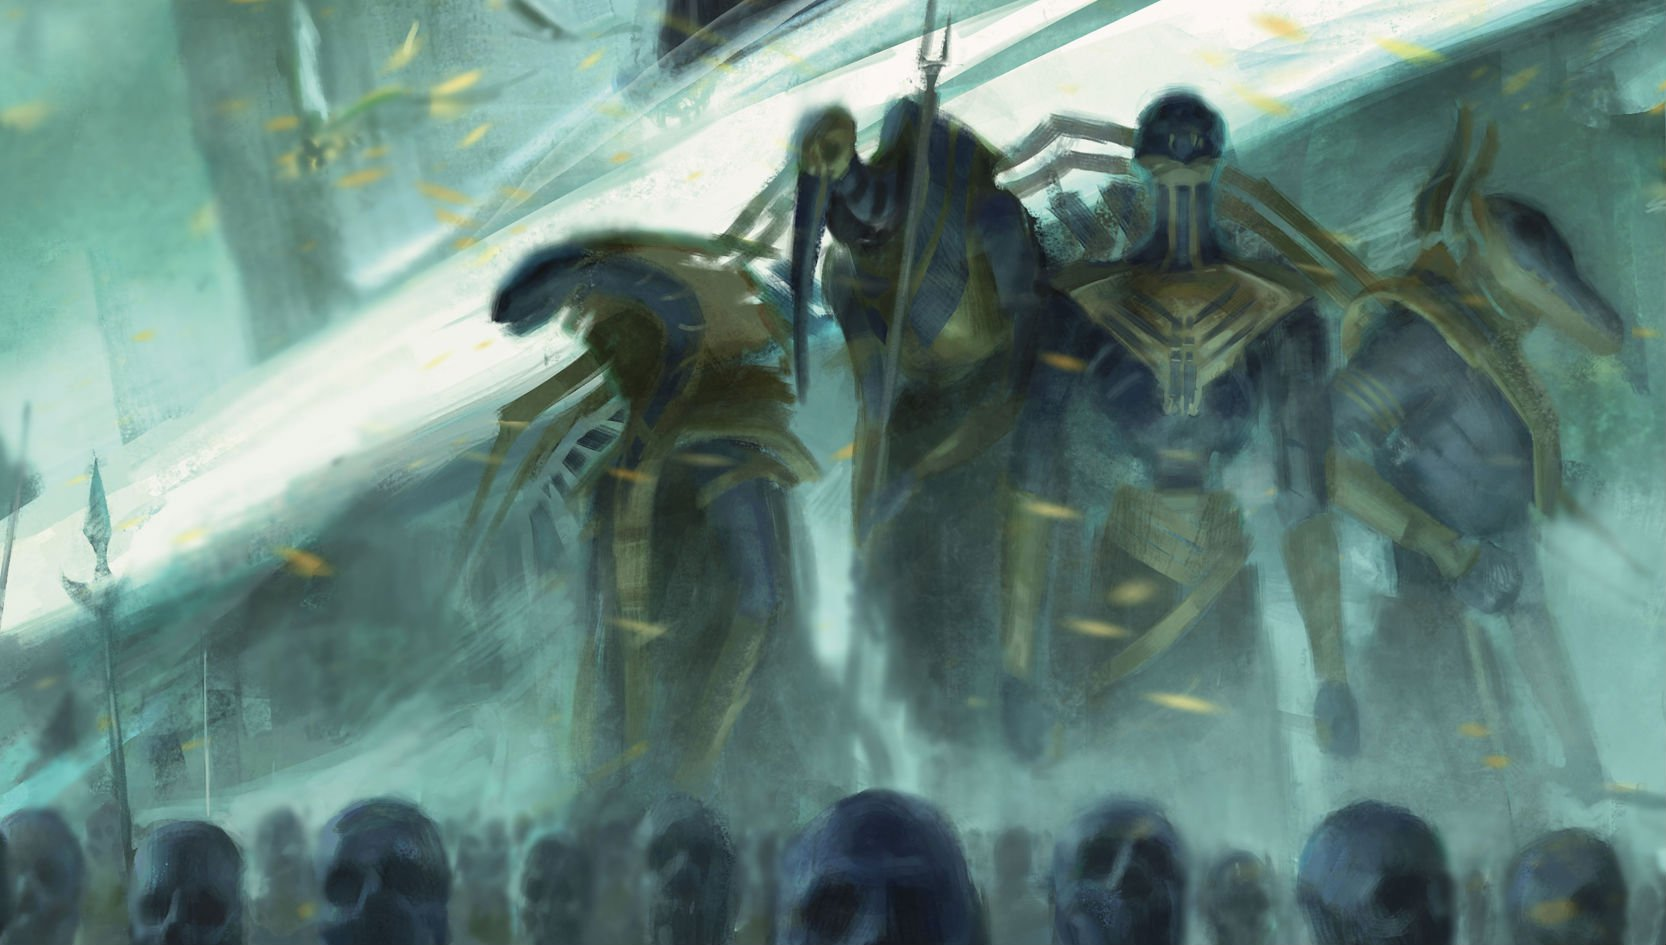 Check out Magic: The Gathering's God-Eternal Bontu, our exclusive card reveal screenshot